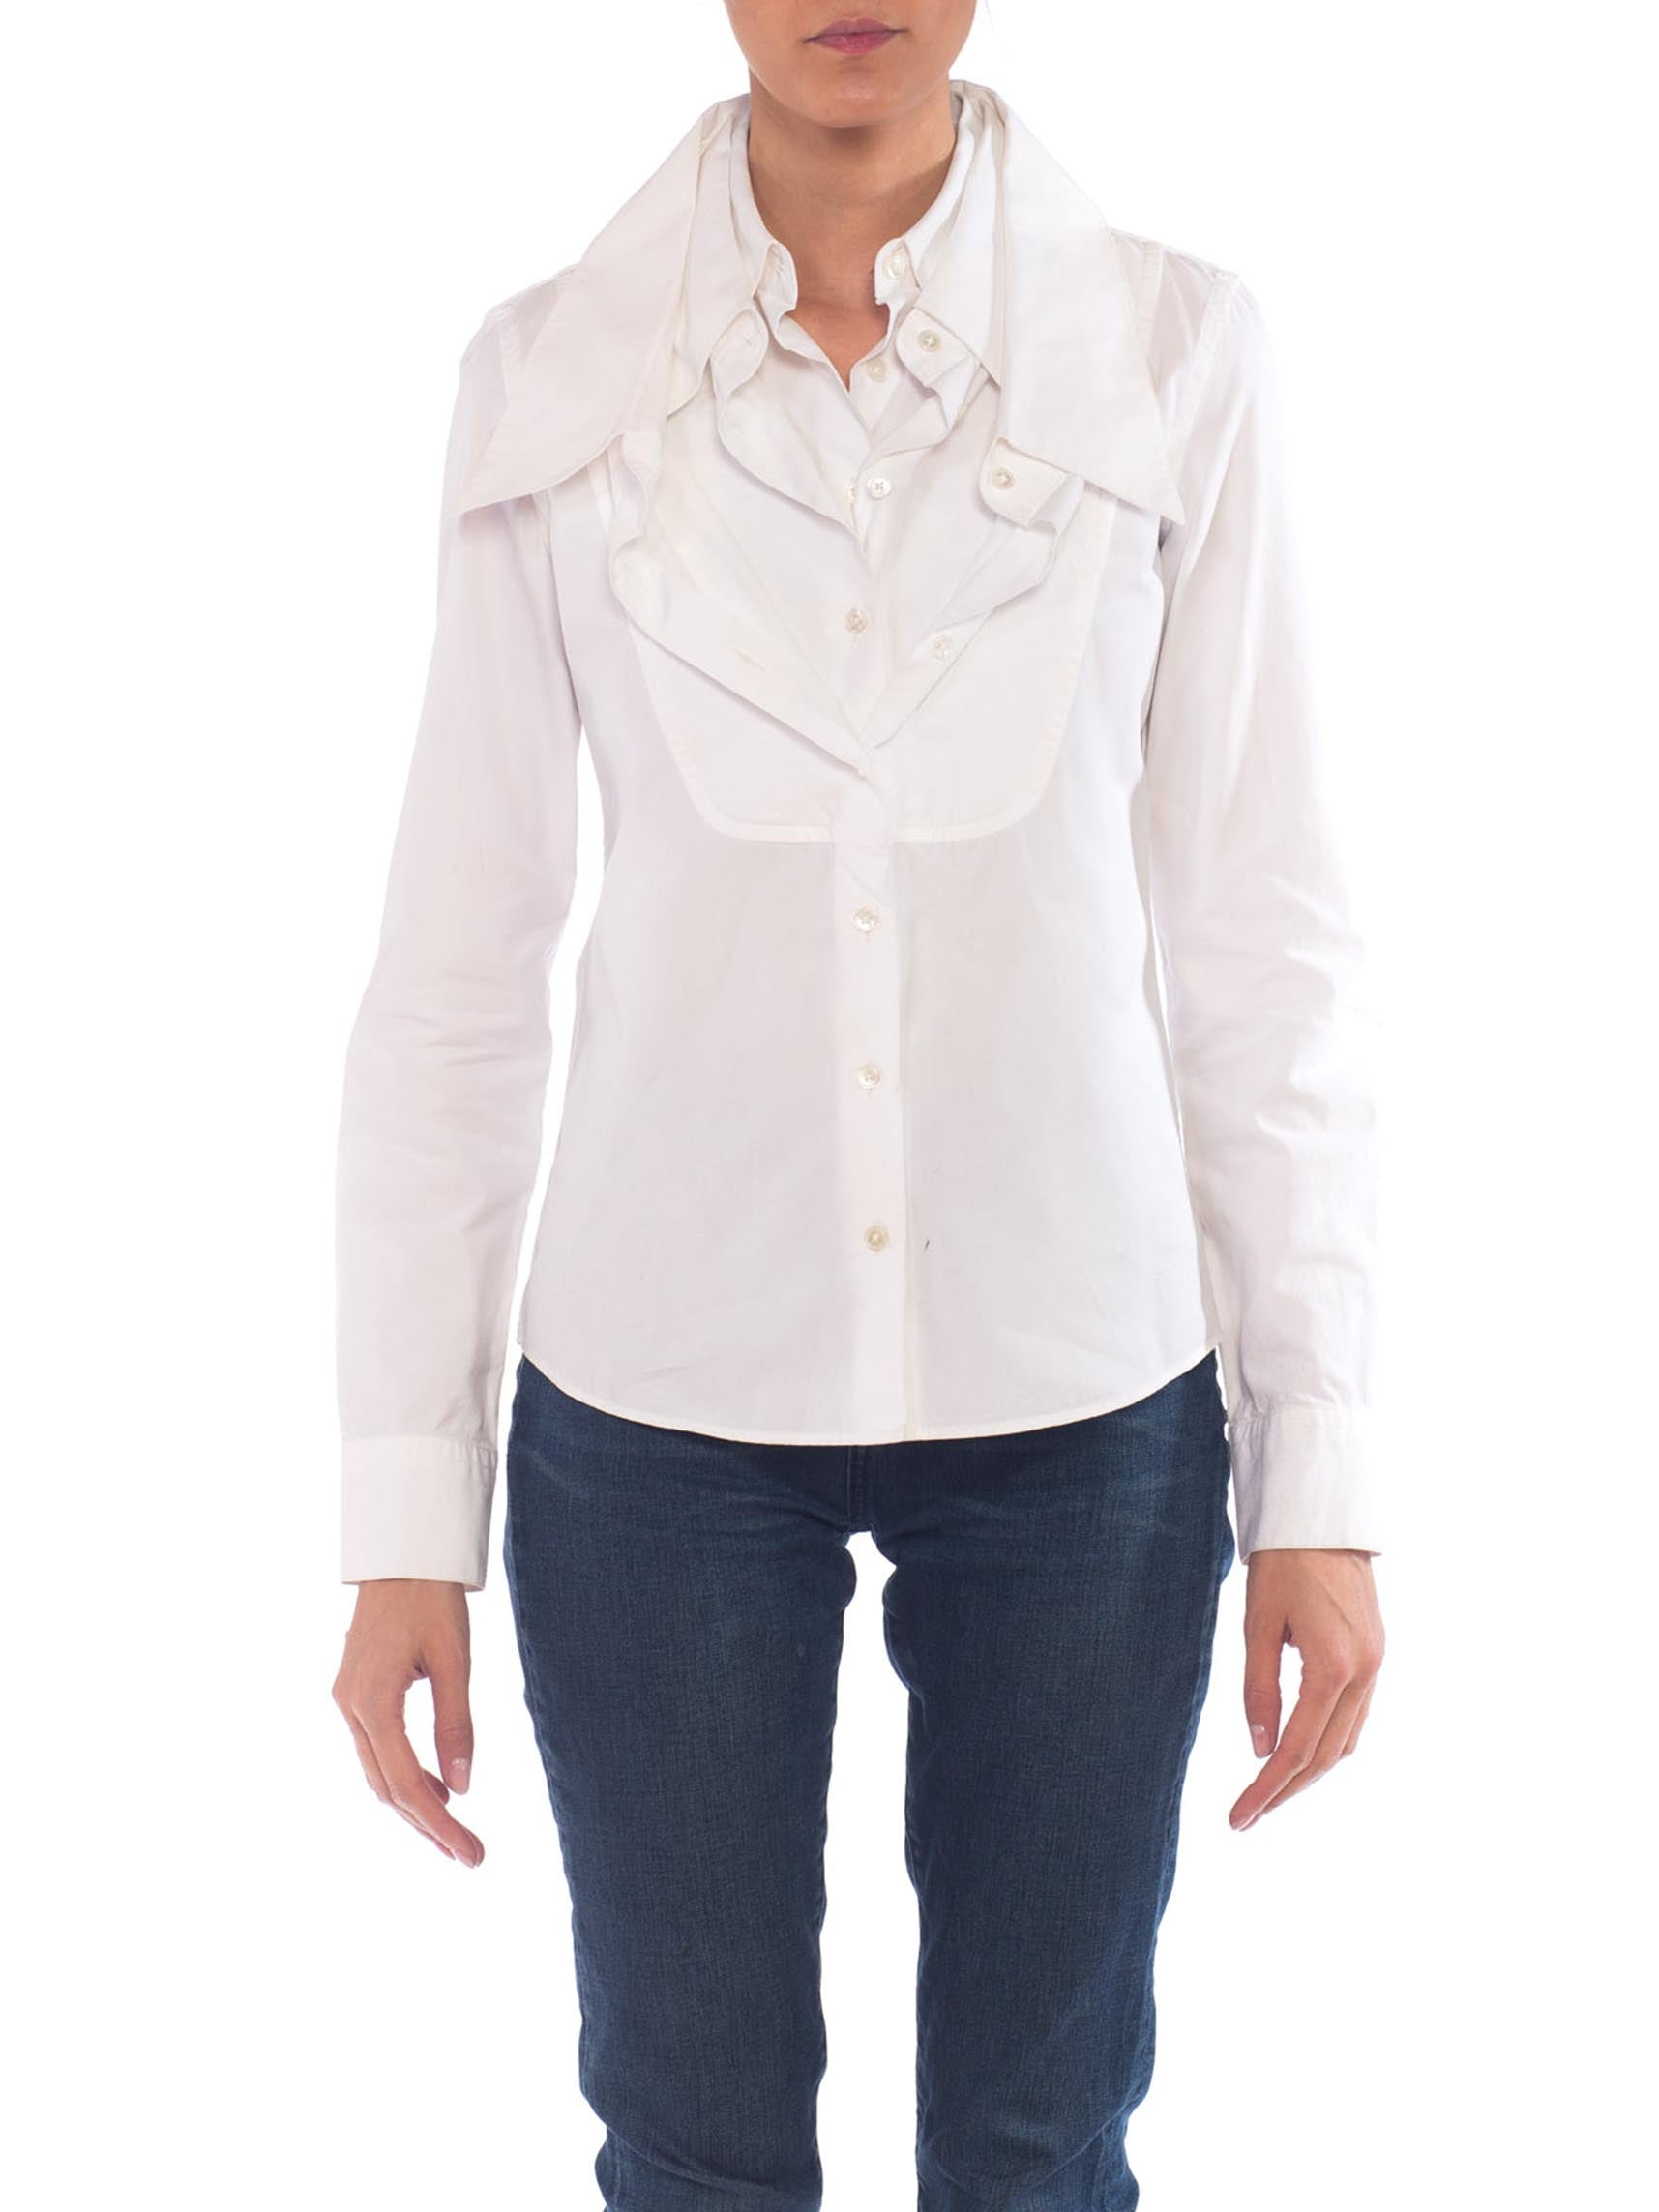 Viktor & Rolf Iconic Multi Collar White Cotton Shirt